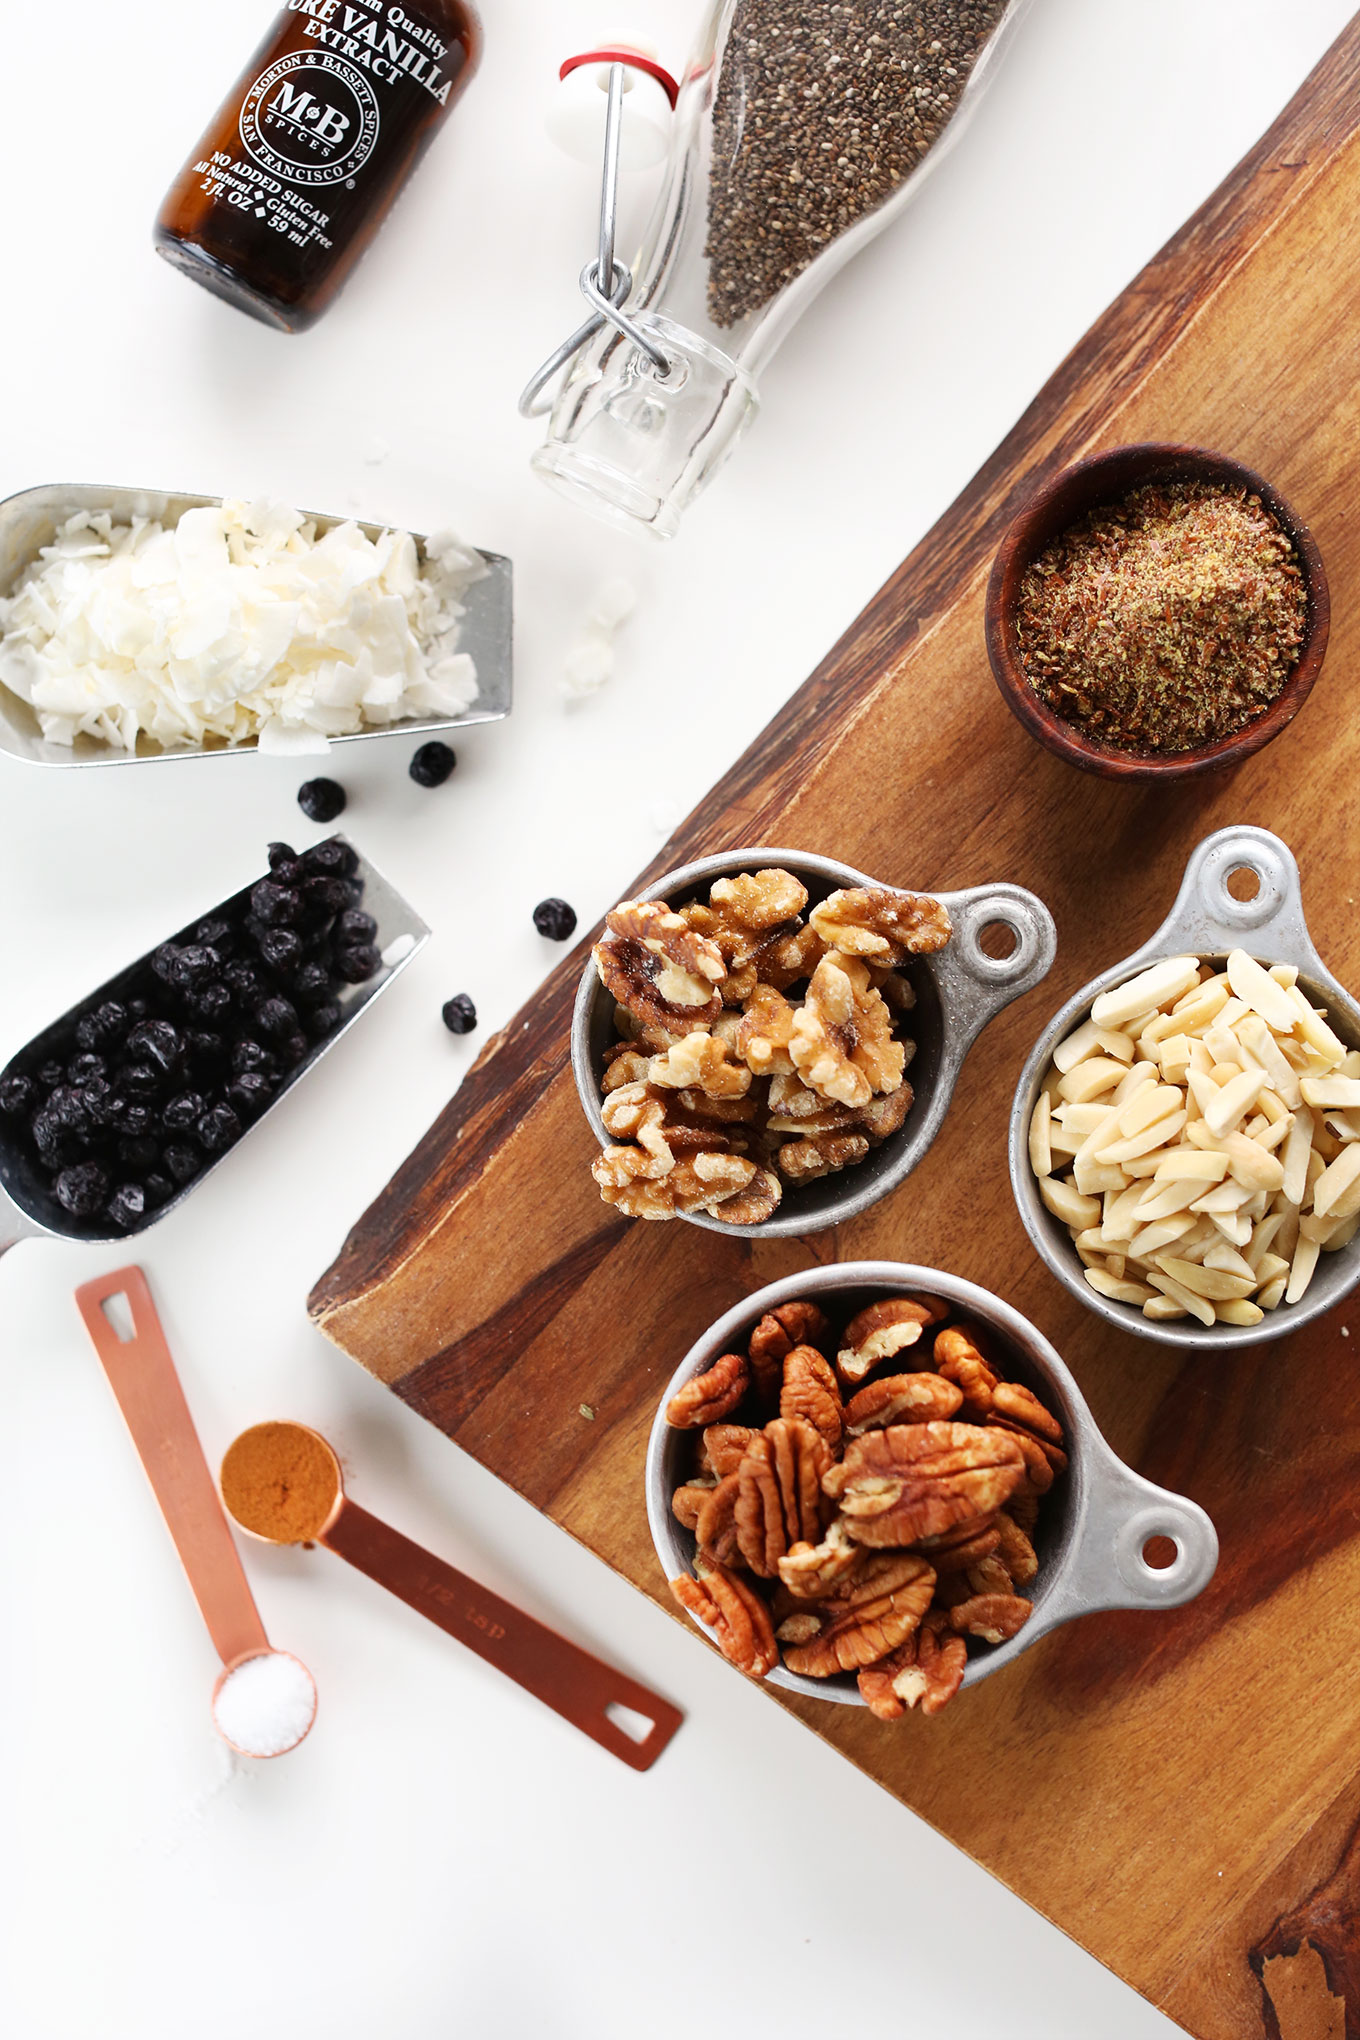 Ingredients for making our homemade high-protein grain-free granola